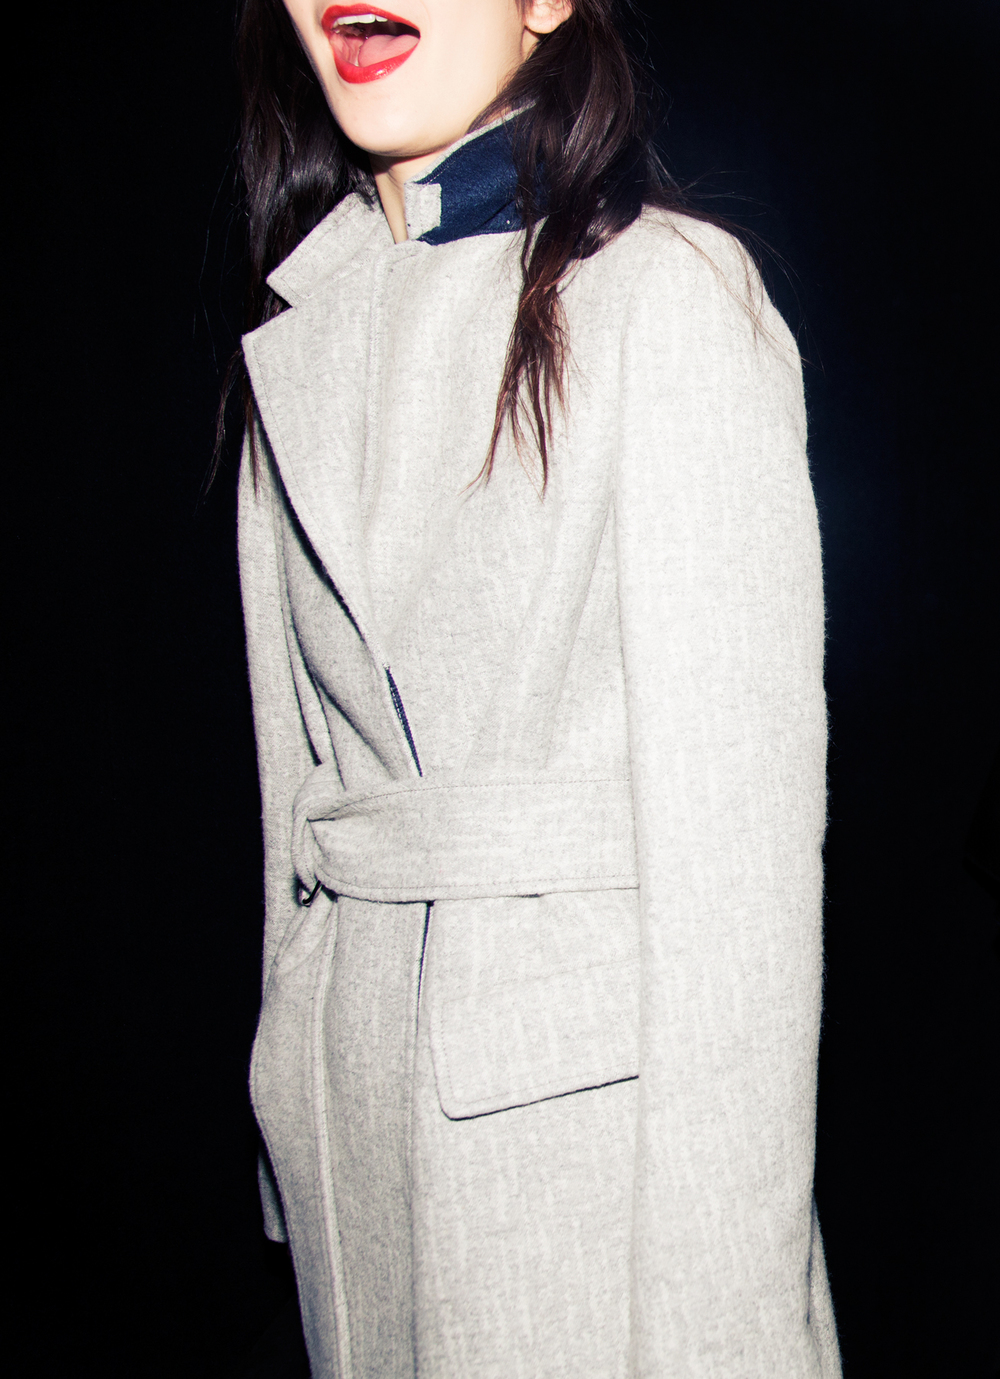 Kate-Owen_NYFW-AW15_Phillip-Lim_074crop-2.jpg